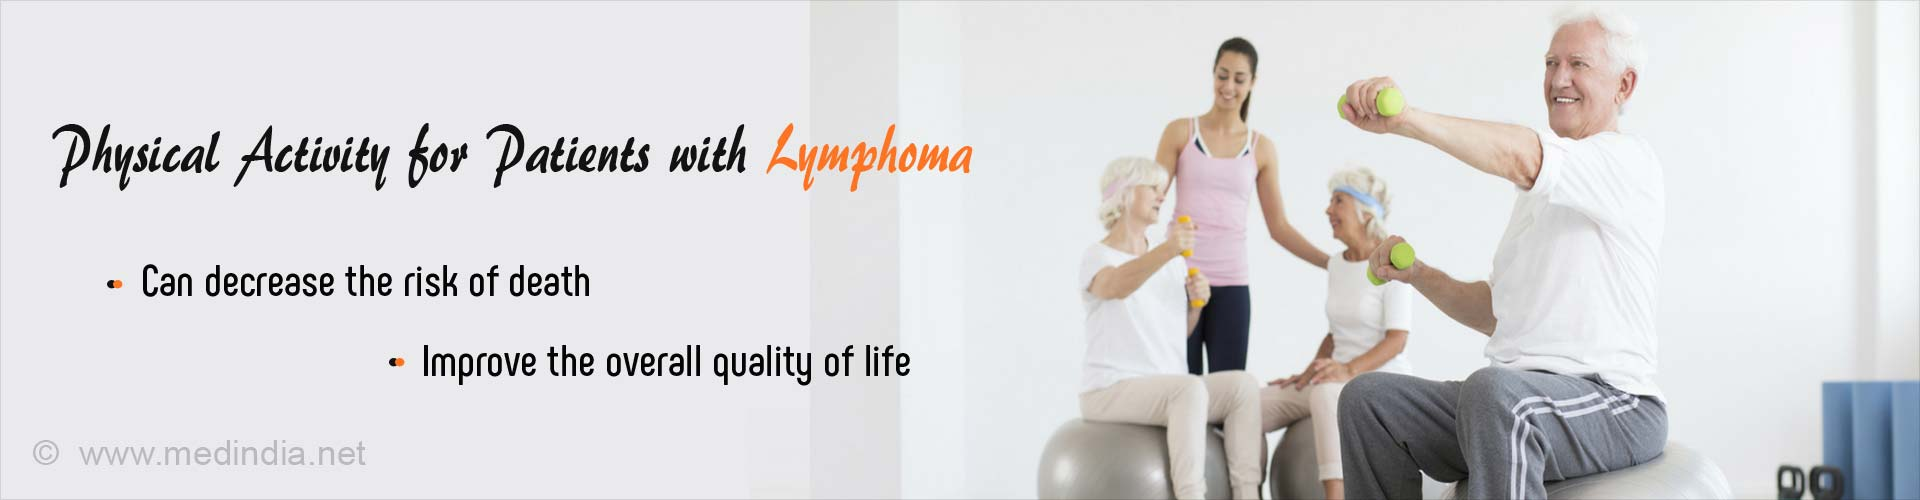 Physical Activity can Improve Lymphoma Patients Chances of Survival